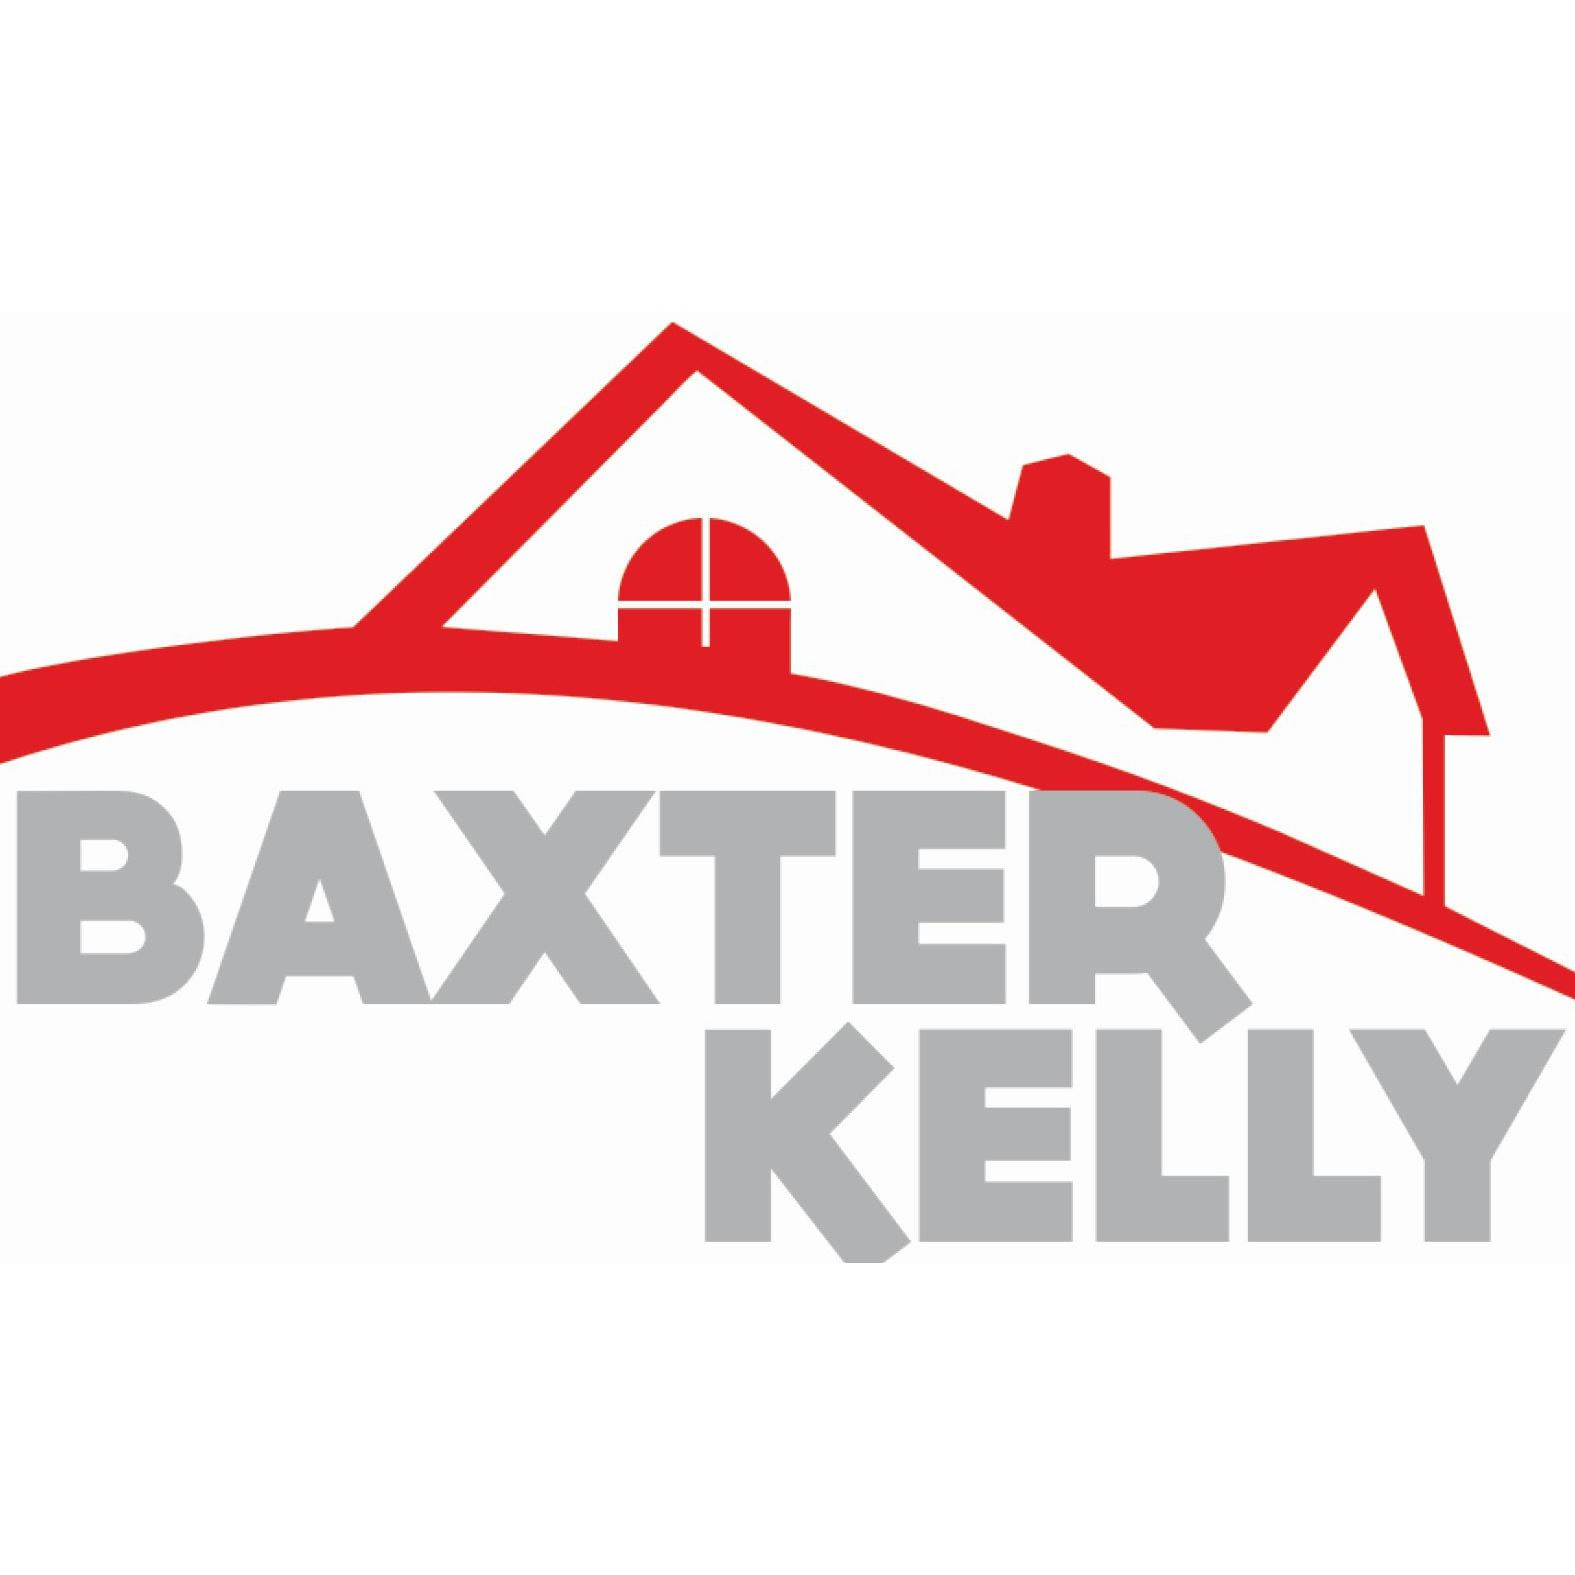 Baxterkelly - Willenhall, West Midlands WV13 1AH - 01902 601499 | ShowMeLocal.com